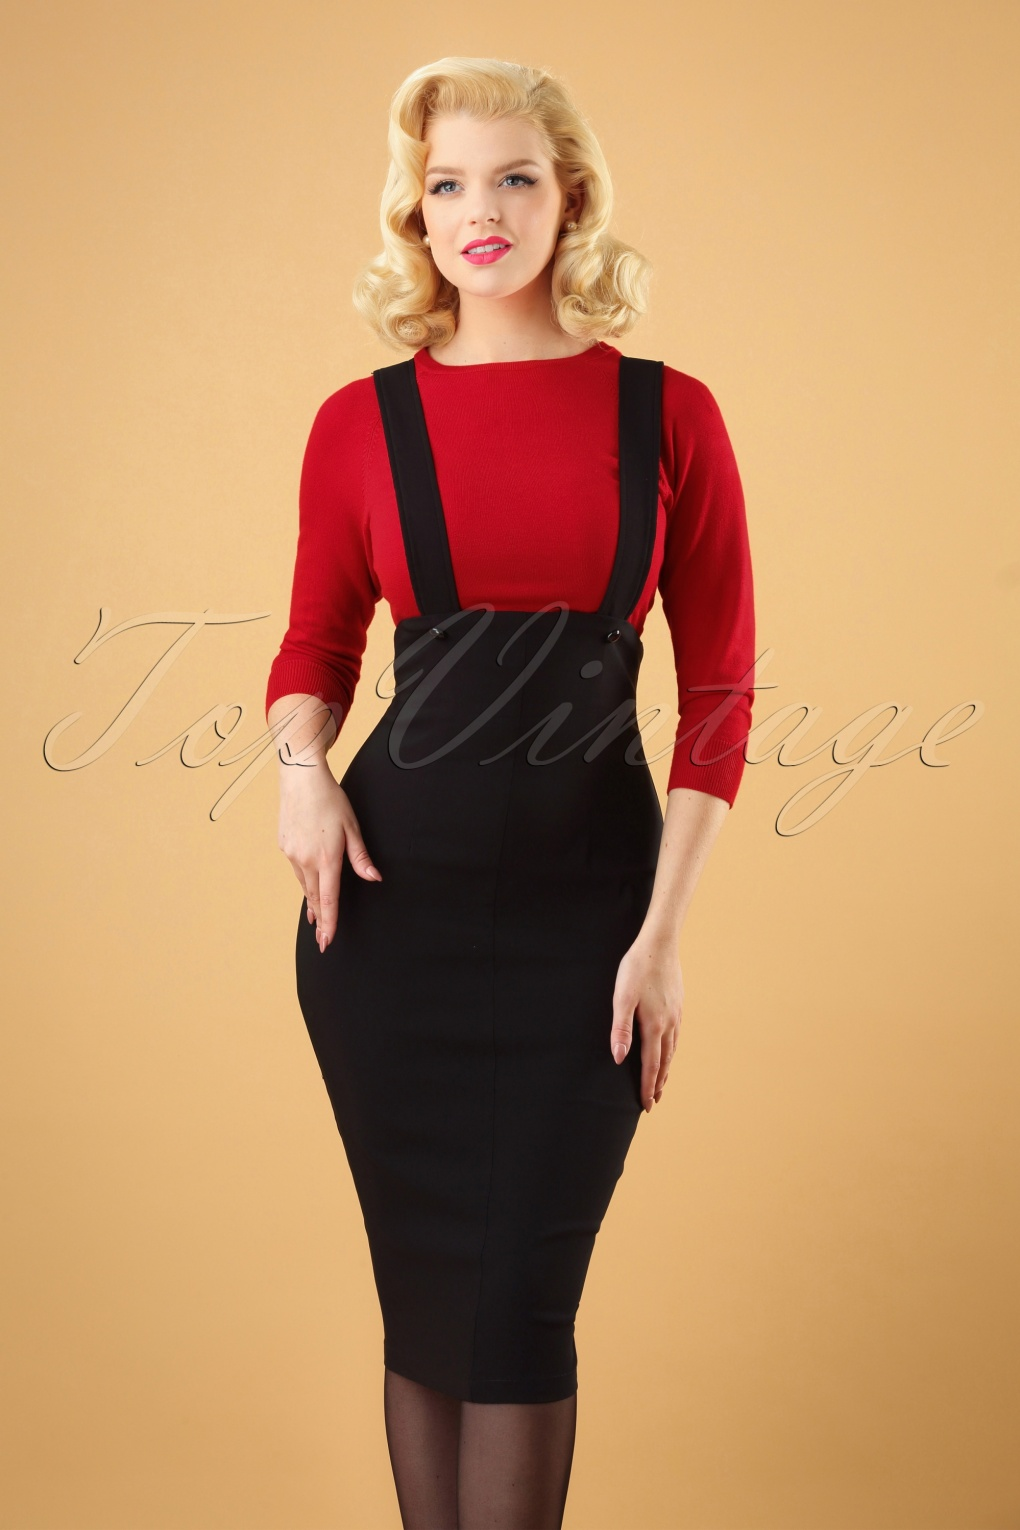 50s Skirt Styles | Poodle Skirts, Circle Skirts, Pencil Skirts 50s Jumper Pencil Skirt in Black £80.29 AT vintagedancer.com